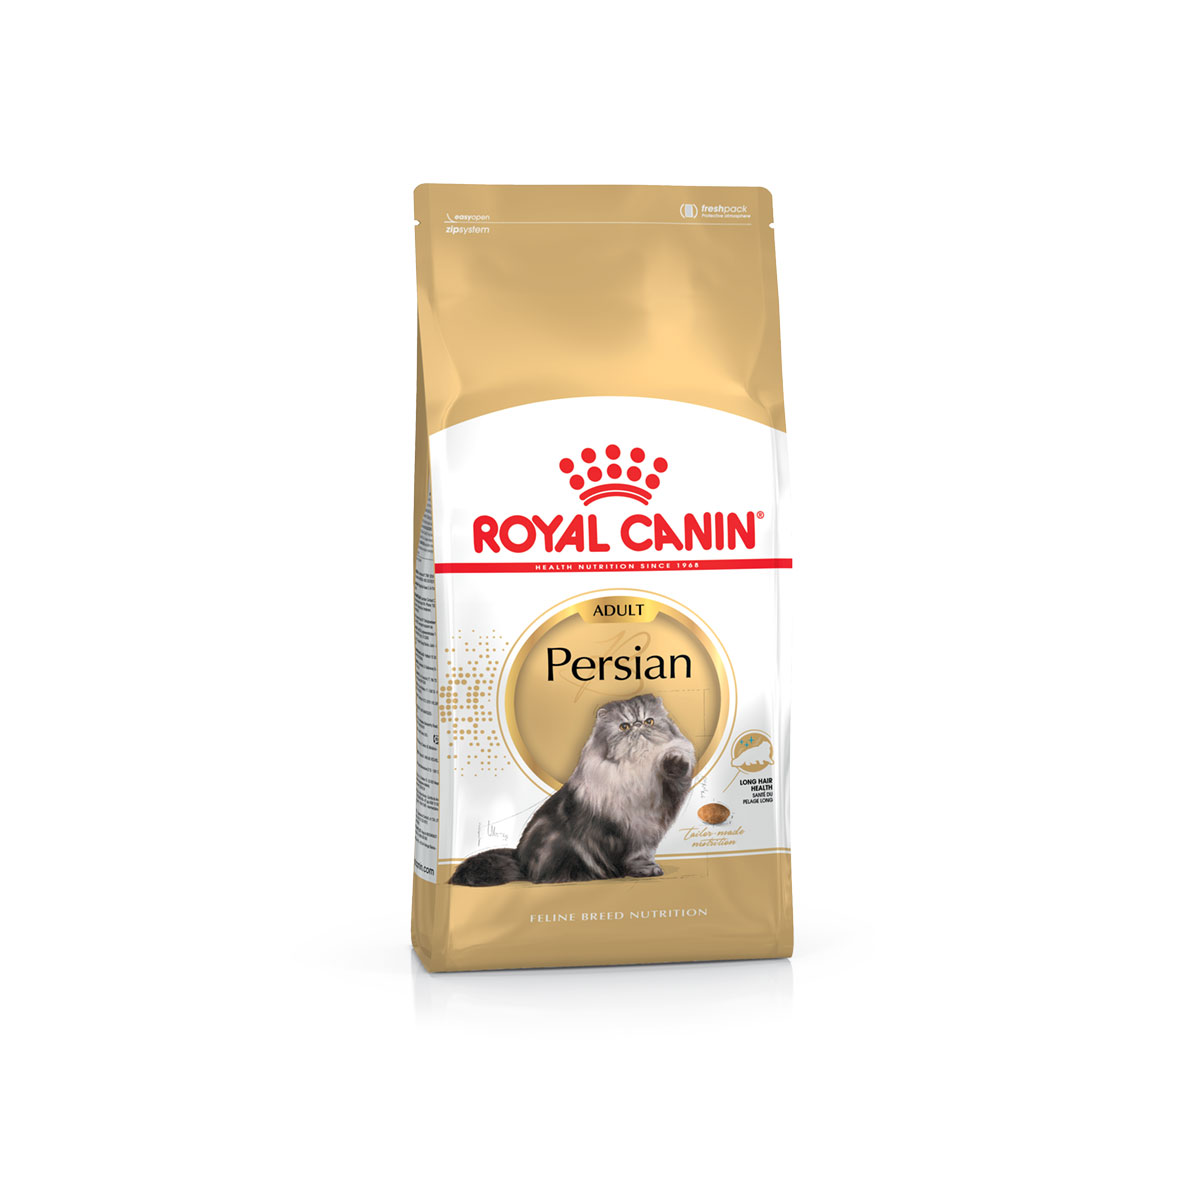 royal canin katzenfutter persian 30 g nstig kaufen bei zooroyal. Black Bedroom Furniture Sets. Home Design Ideas